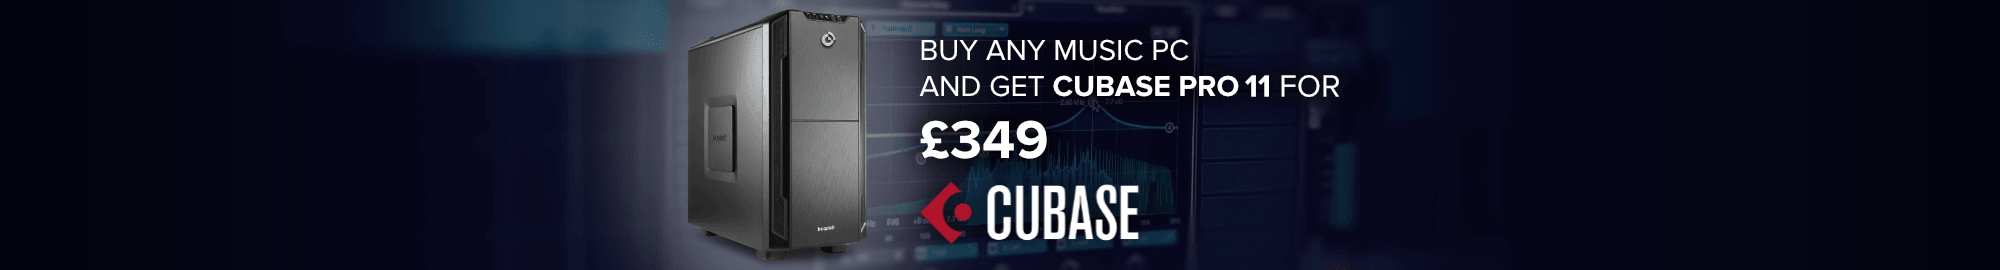 Buy Any Music PC and get Cubase 11 Pro for £349